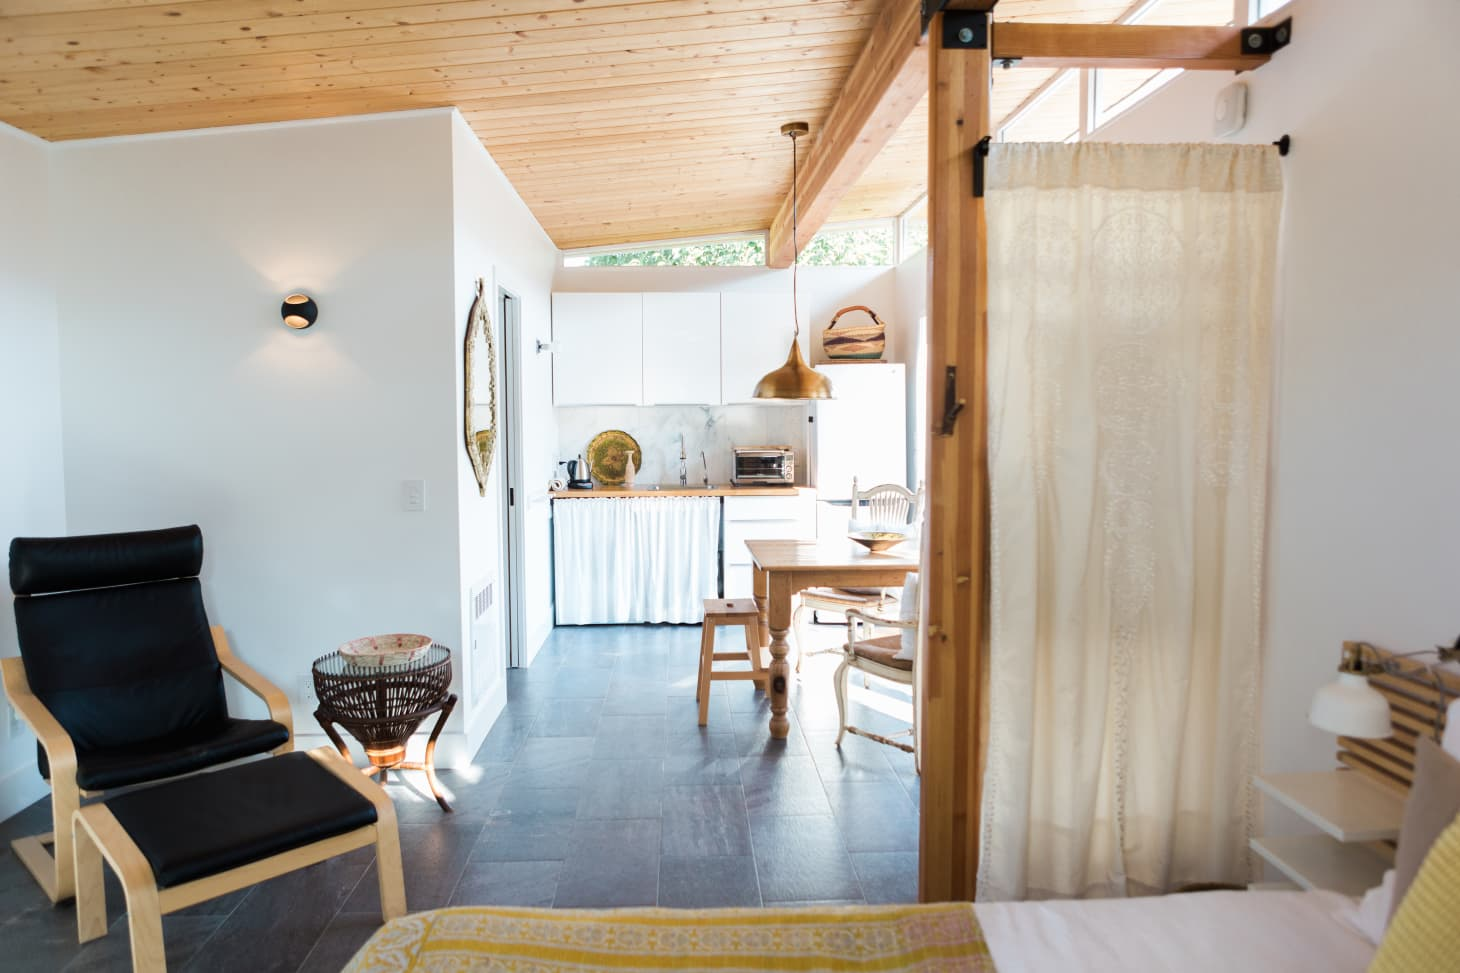 6 Major Decorating Tips From Tiny House Owners Apartment